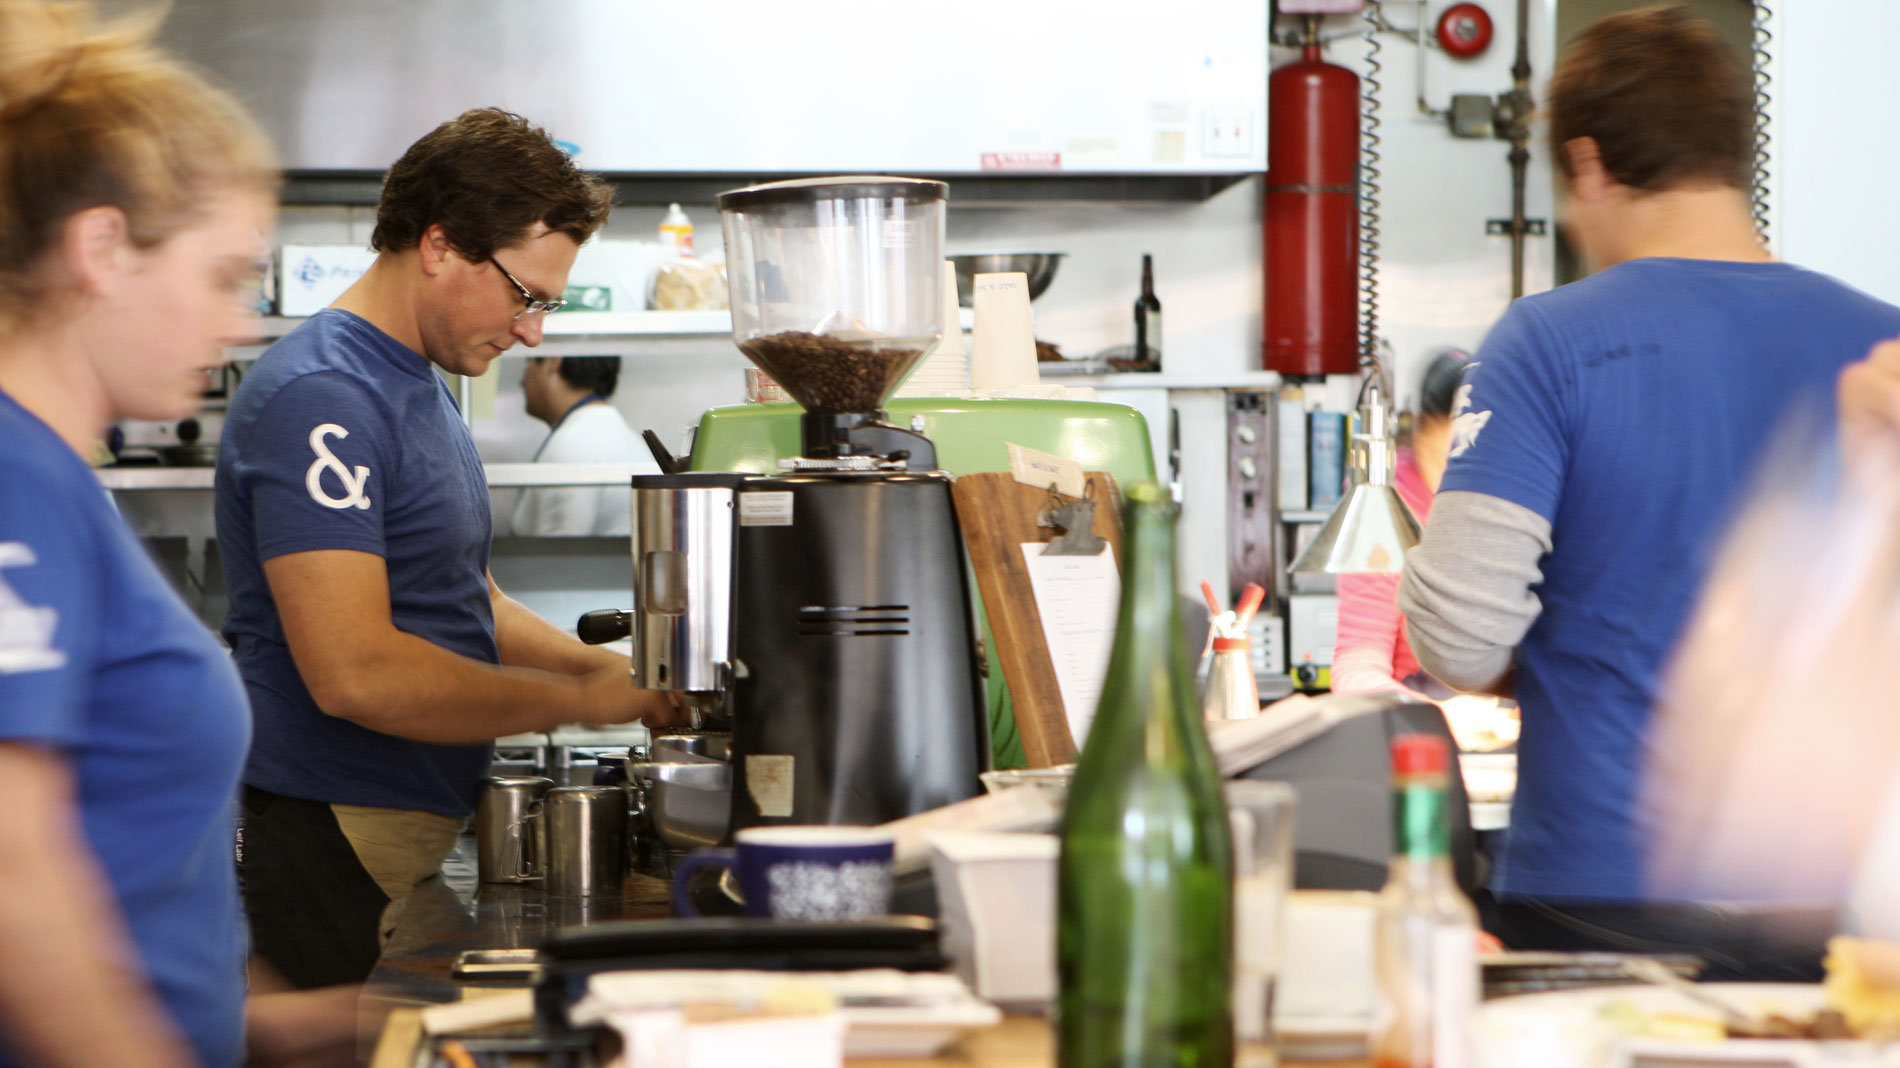 Mike Marquard joins half & half to helm coffee program